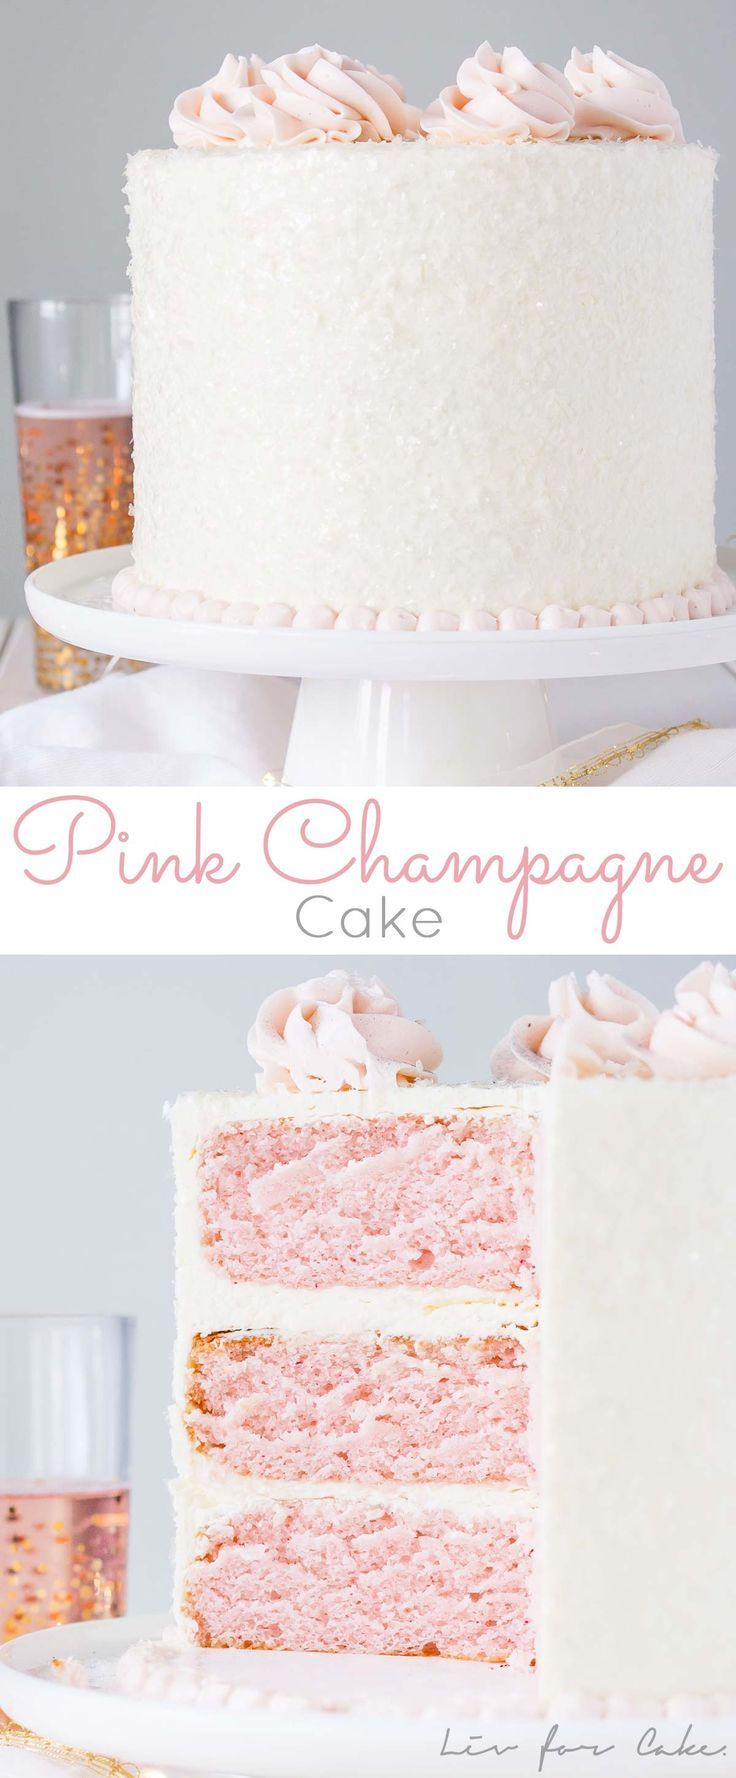 This Pink Champagne Cake is the perfect way to celebrate any occasion or holiday! A champagne infused cake with a classic vanilla buttercream. | http://livforcake.com via /livforcake/